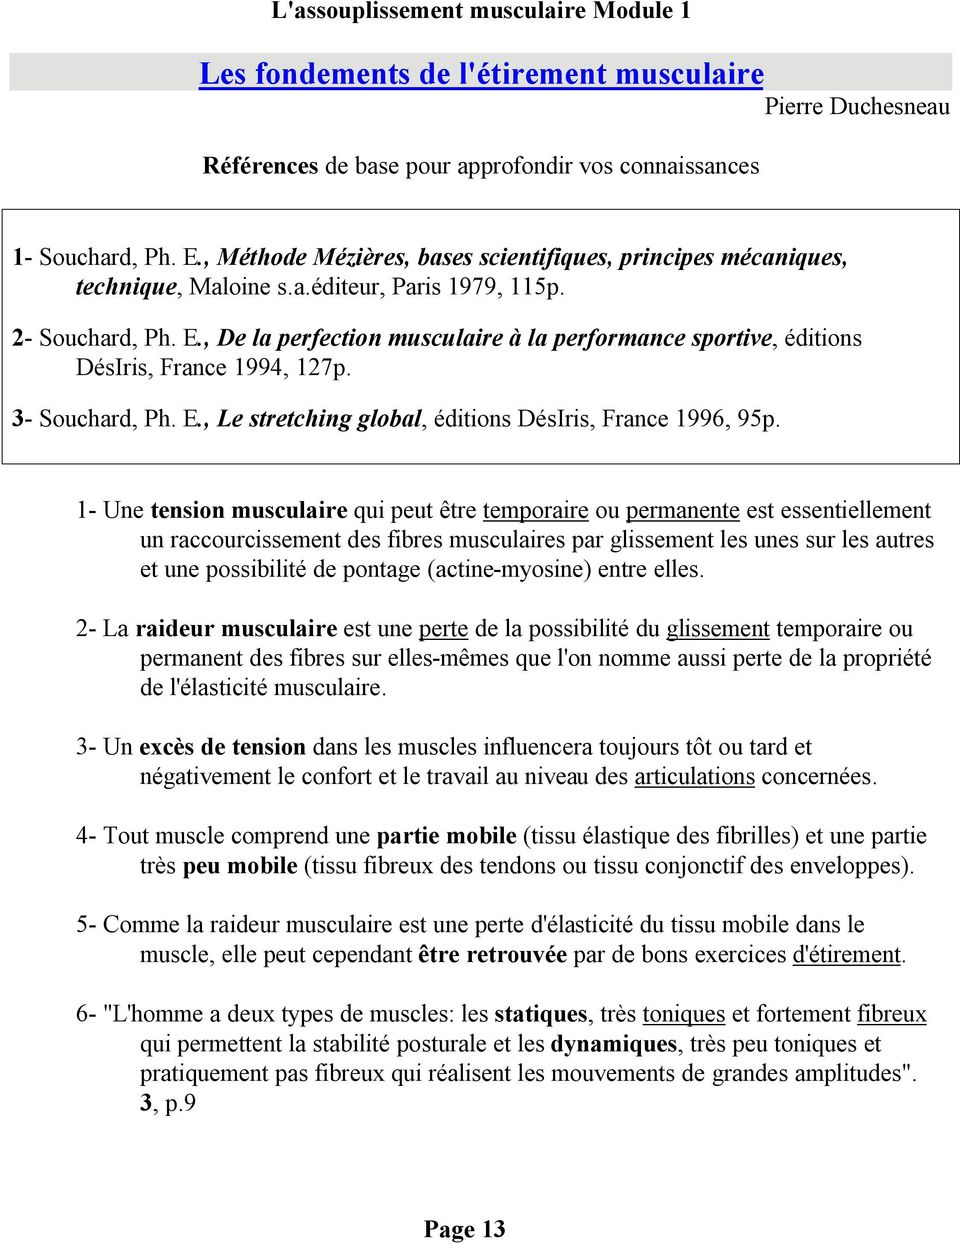 , De la perfection musculaire à la performance sportive, éditions DésIris, France 1994, 127p. 3- Souchard, Ph. E., Le stretching global, éditions DésIris, France 1996, 95p.